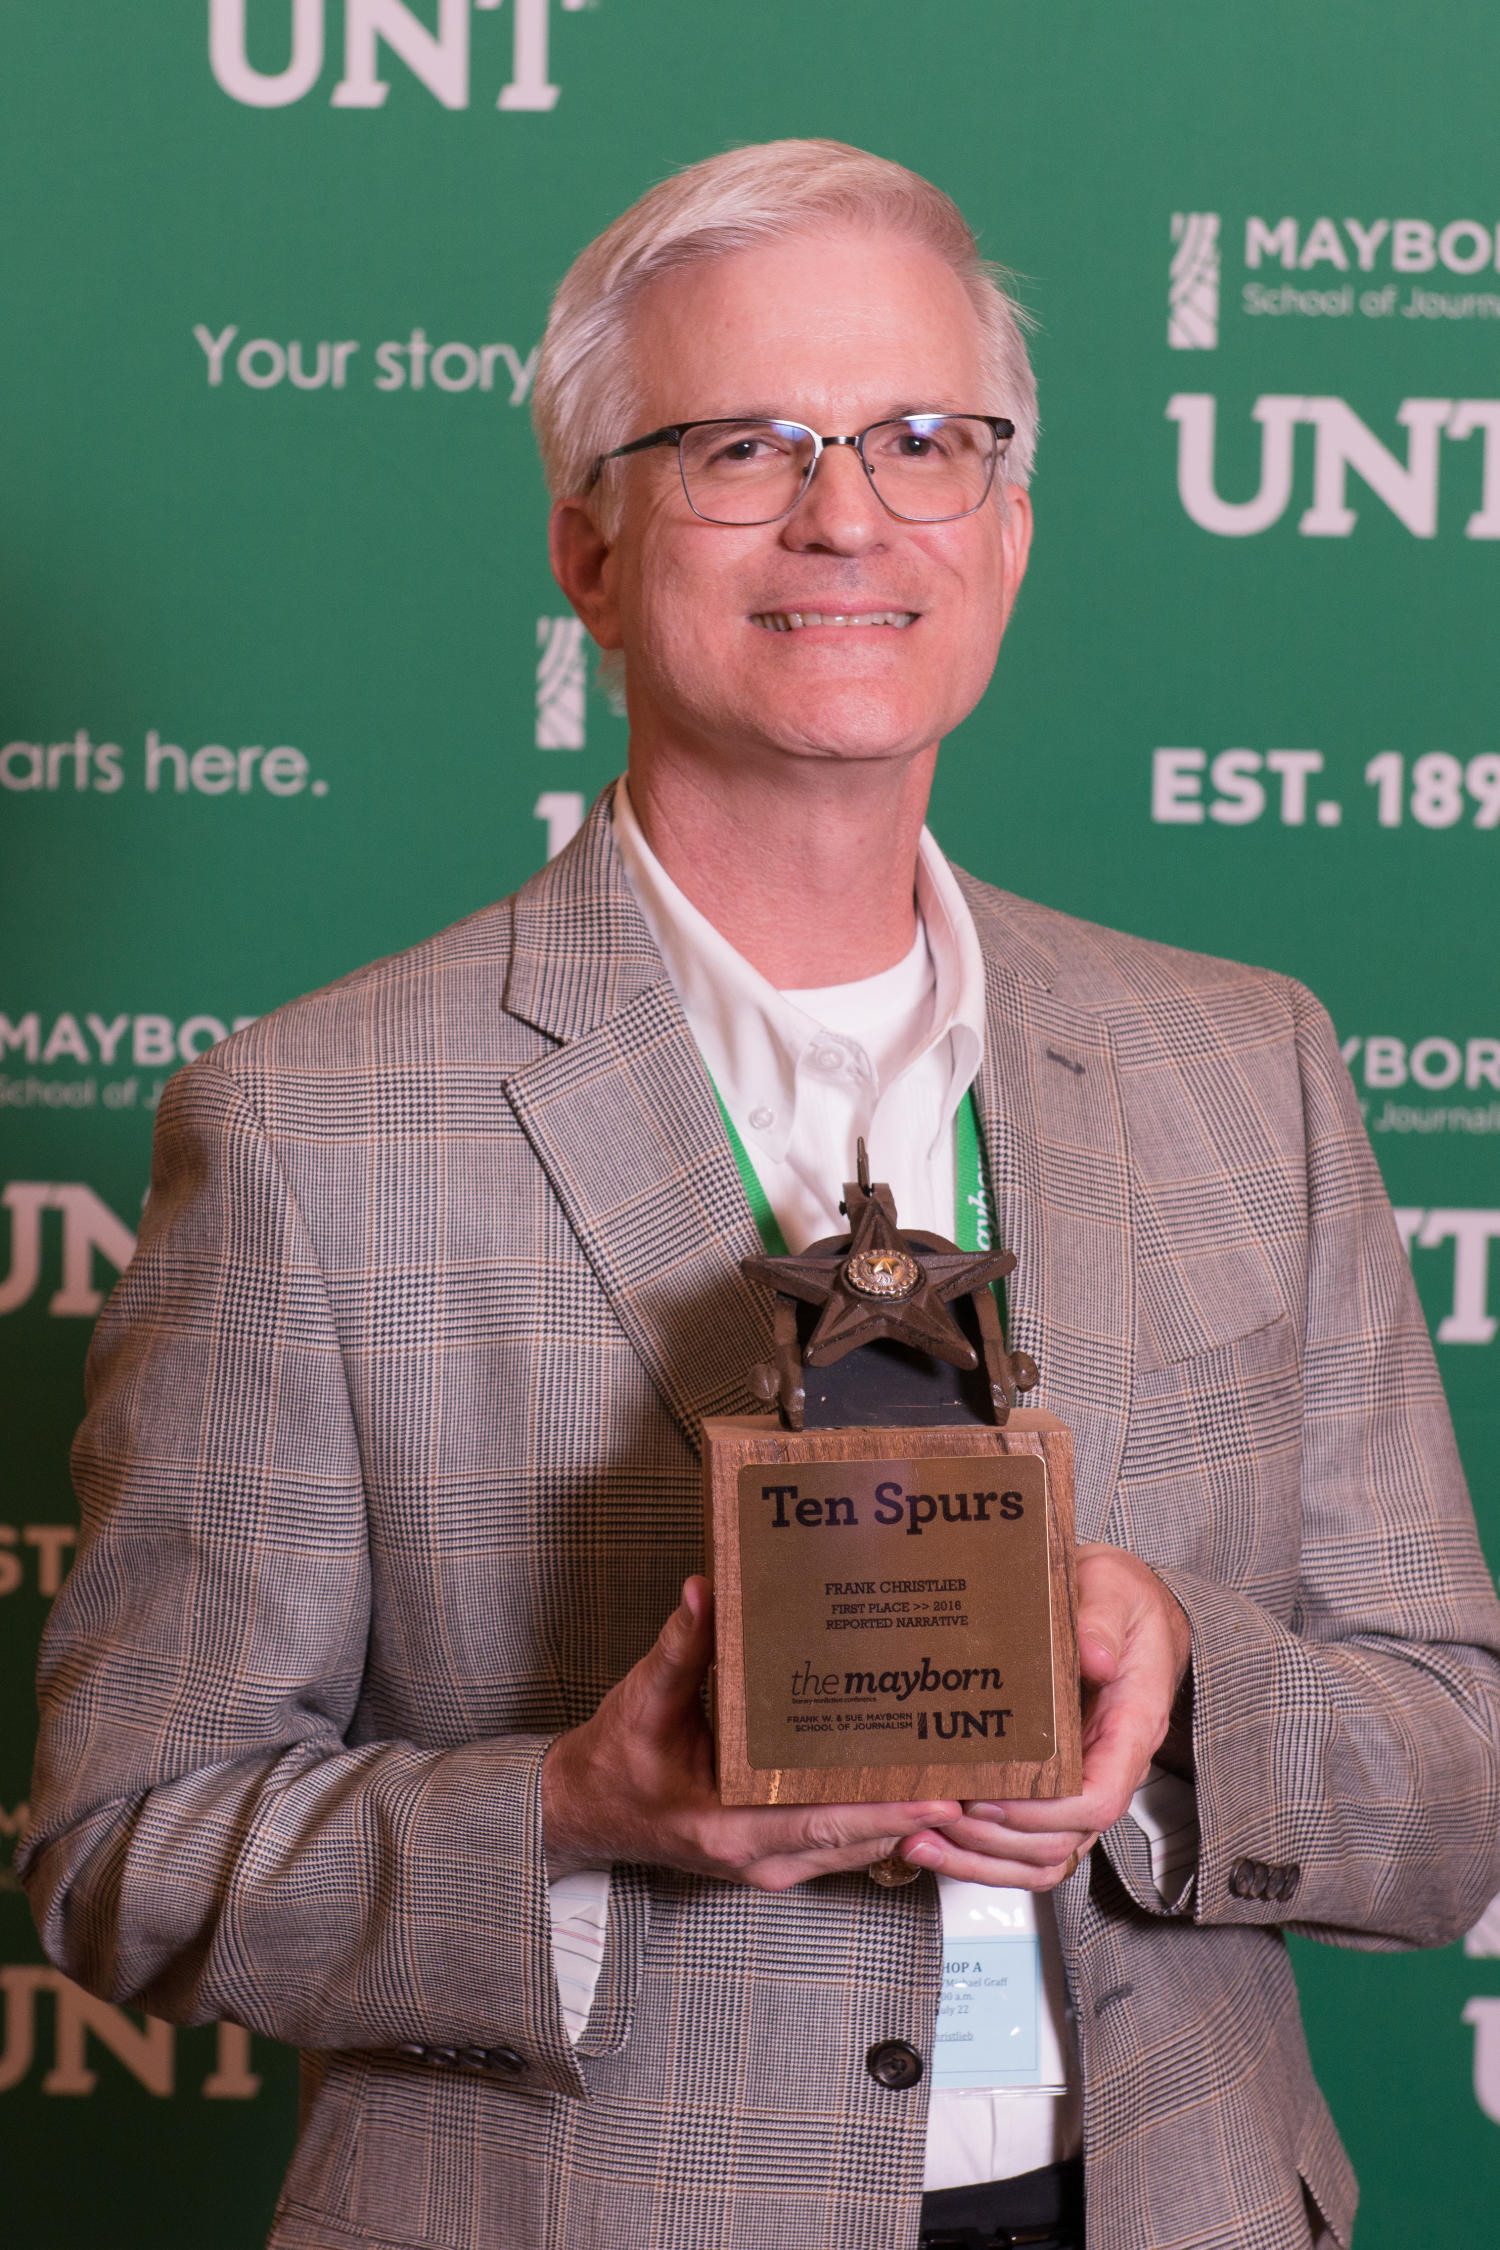 [Frank Christlieb holding first place Ten Spurs trophy], Photograph of Frank Christlieb, a writer and editor with The Dallas Morning News, holding his Ten Spurs third place award for Reported Narrative. He received the honor at the Literary Lights Dinner during the Mayborn Literary Nonfiction Conference. The dinner was held in the International Ballroom at the Hilton DFW Lakes Executive Conference Center, Grapevine, TX.,